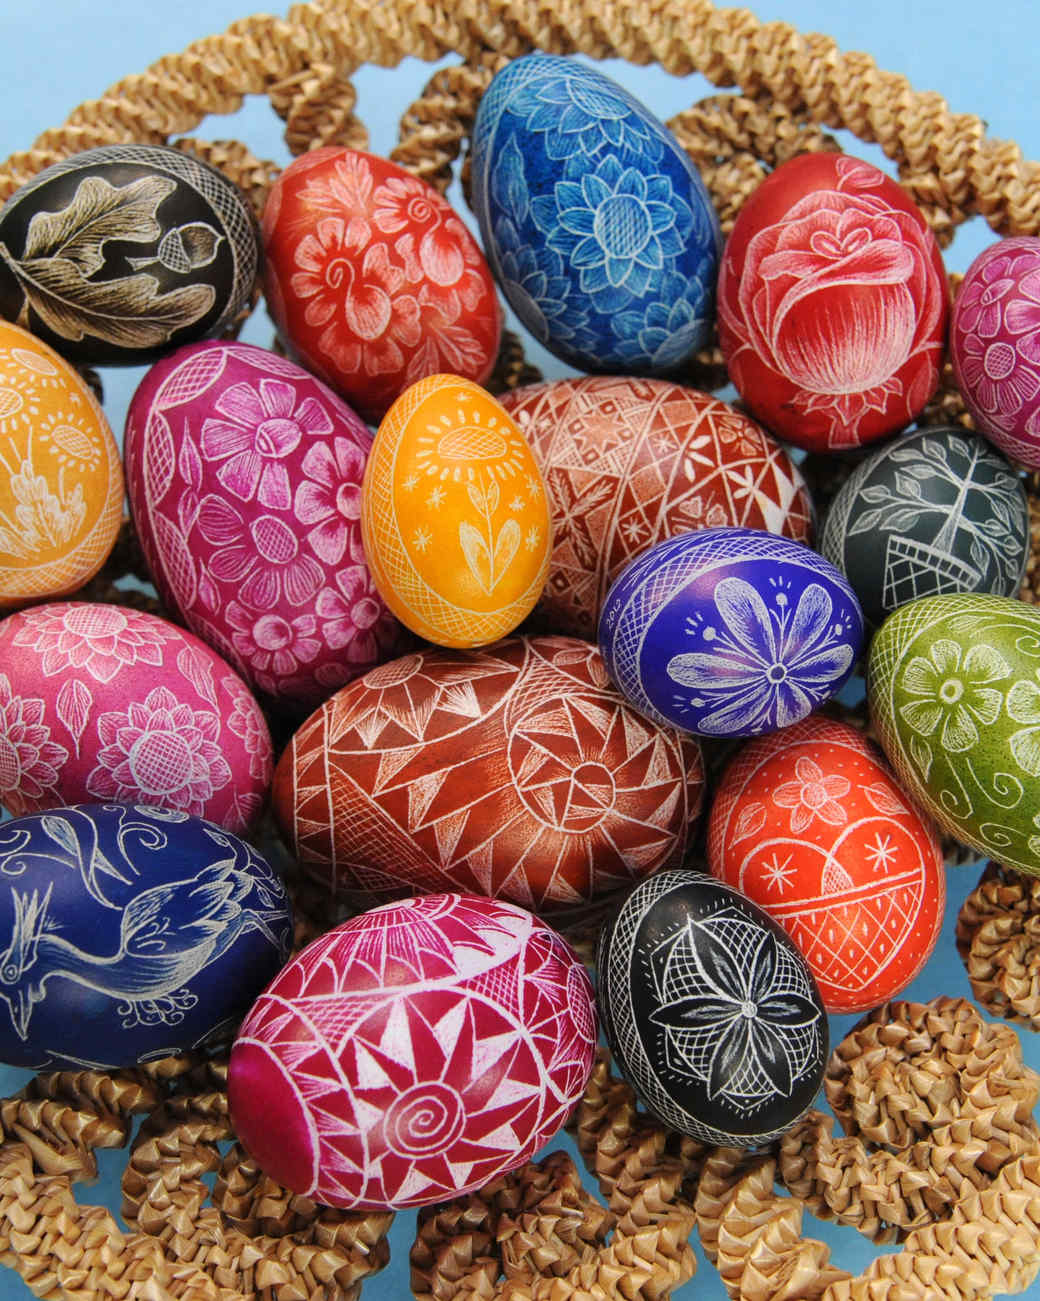 etched-eggs-mslb7117.jpg